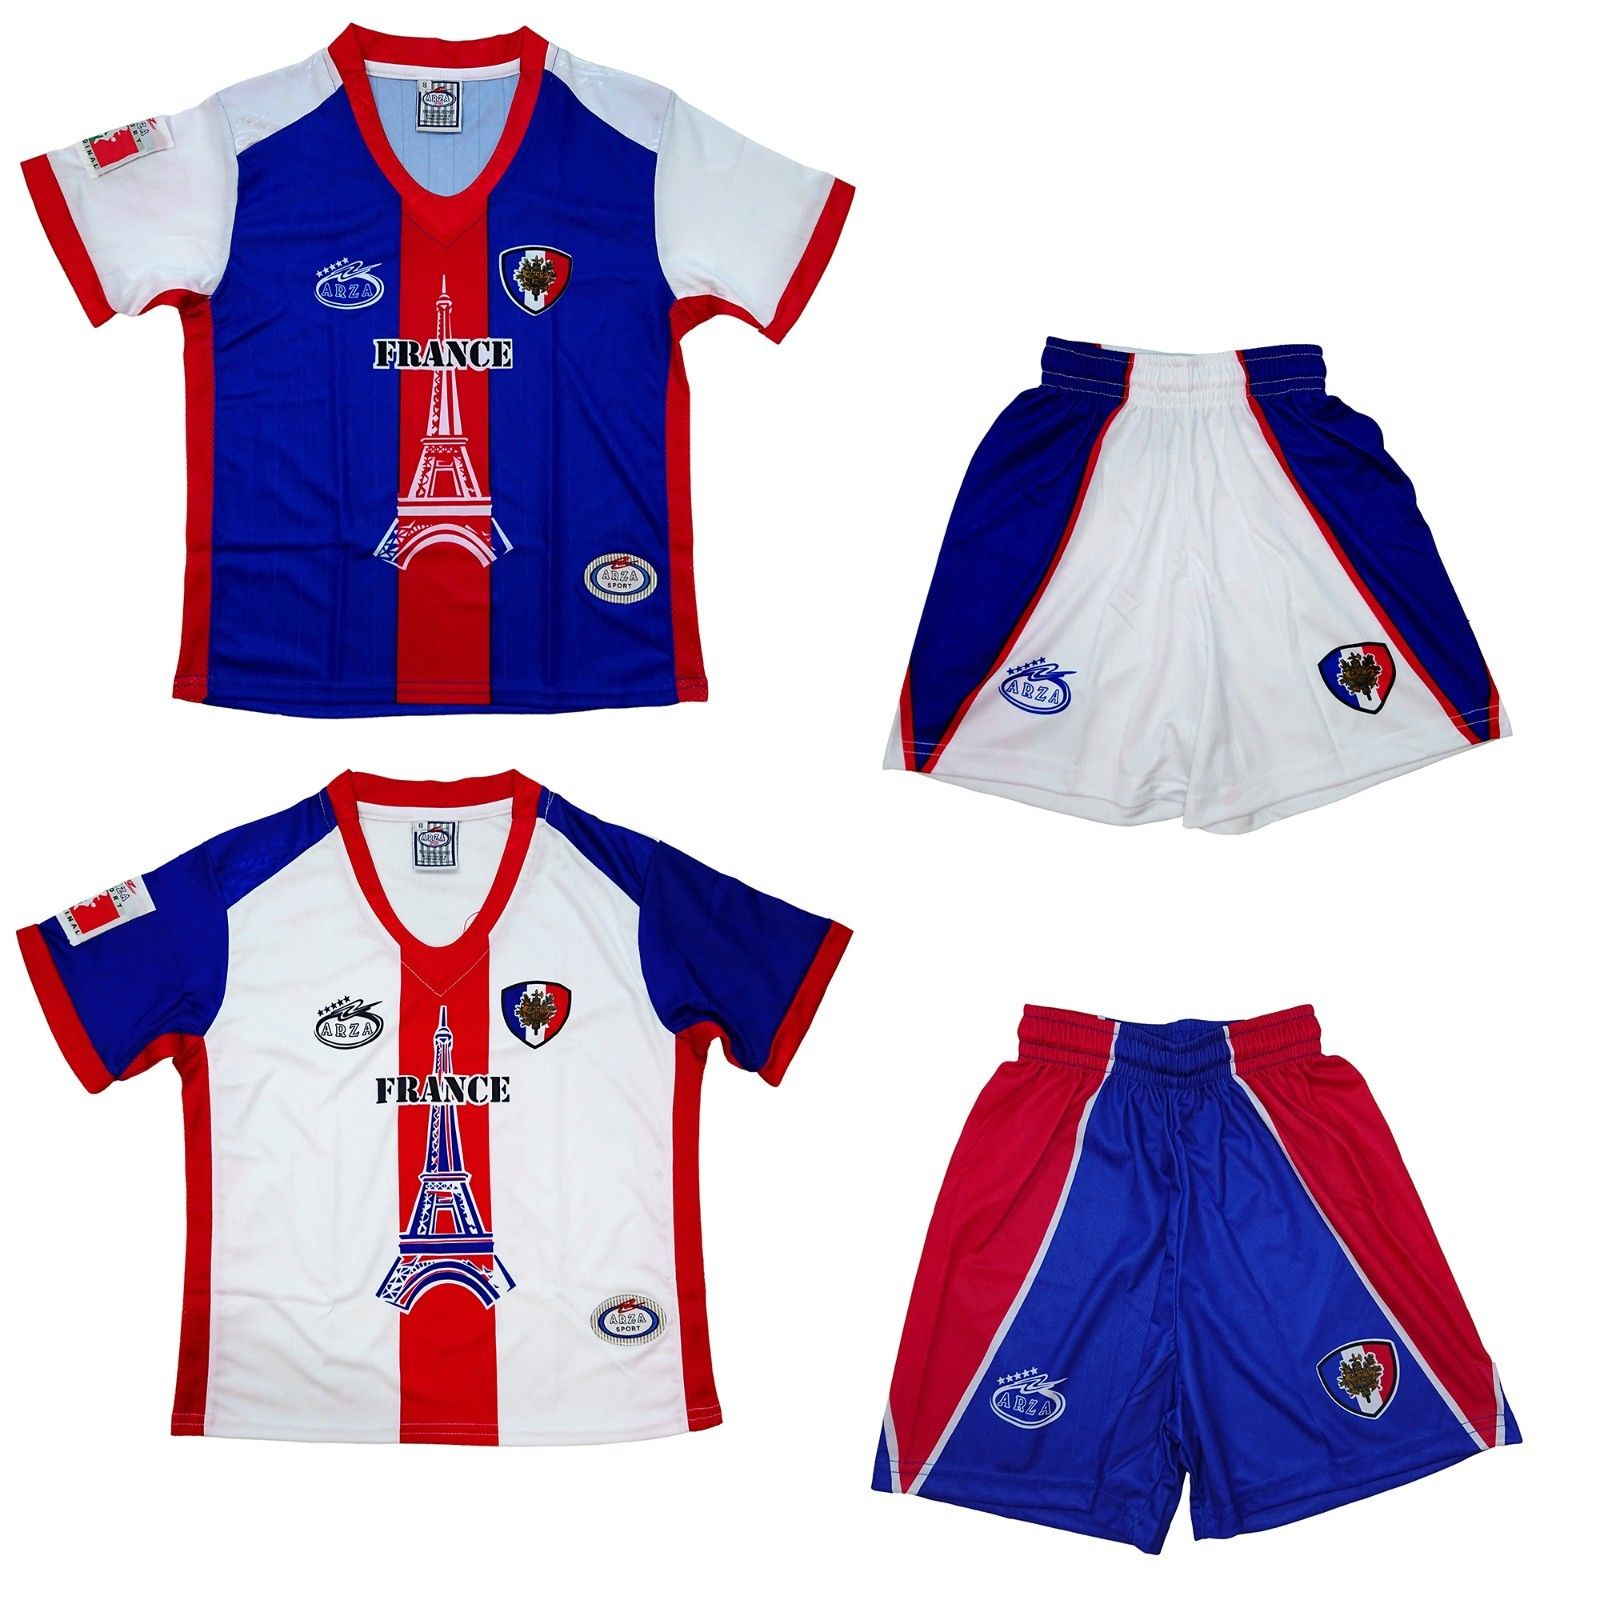 7dfa6507c France Home and Away Arza Youth and Adult Soccer Uniform ...